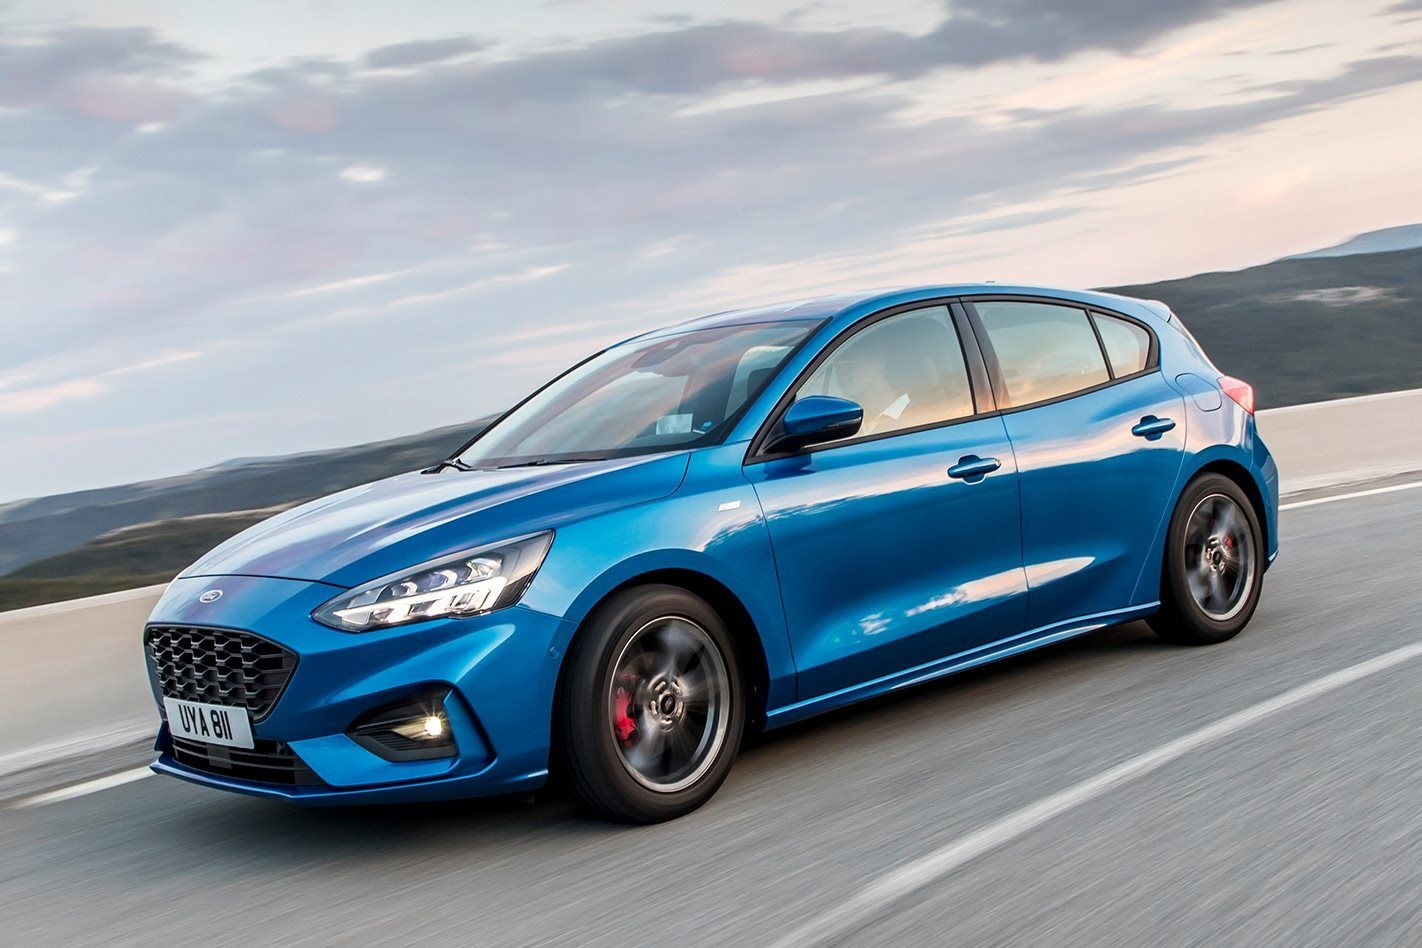 18 All New 2019 Ford Fiesta St Rs Wallpaper